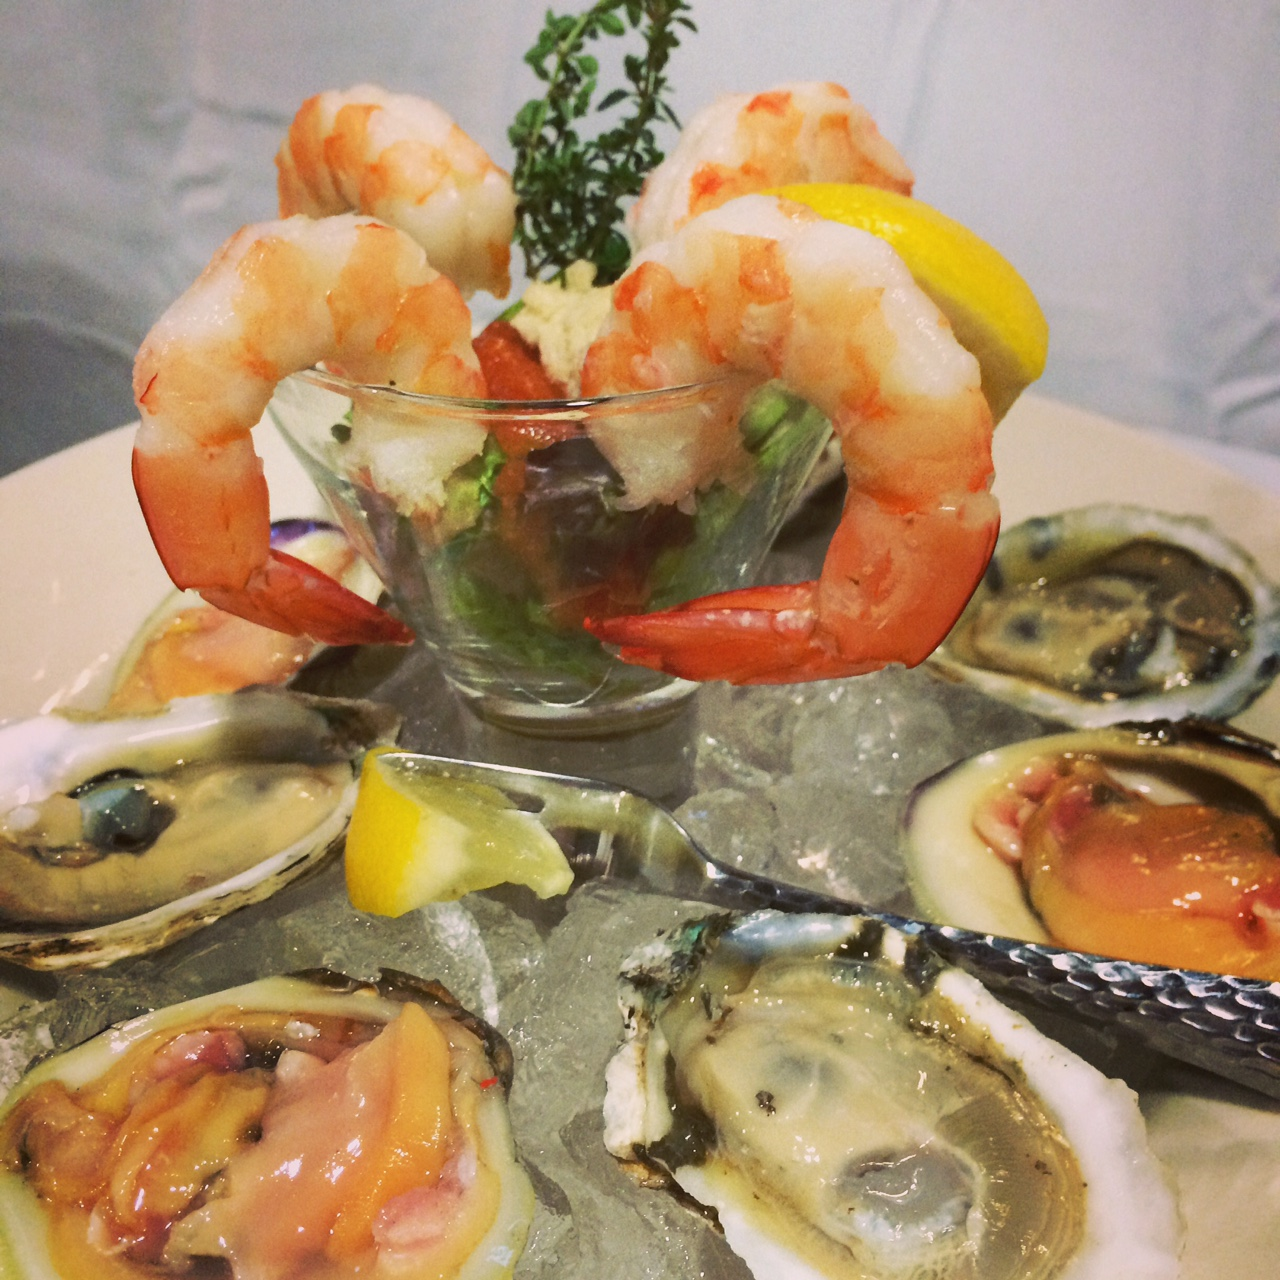 Youell's Oyster House, Allentown PA